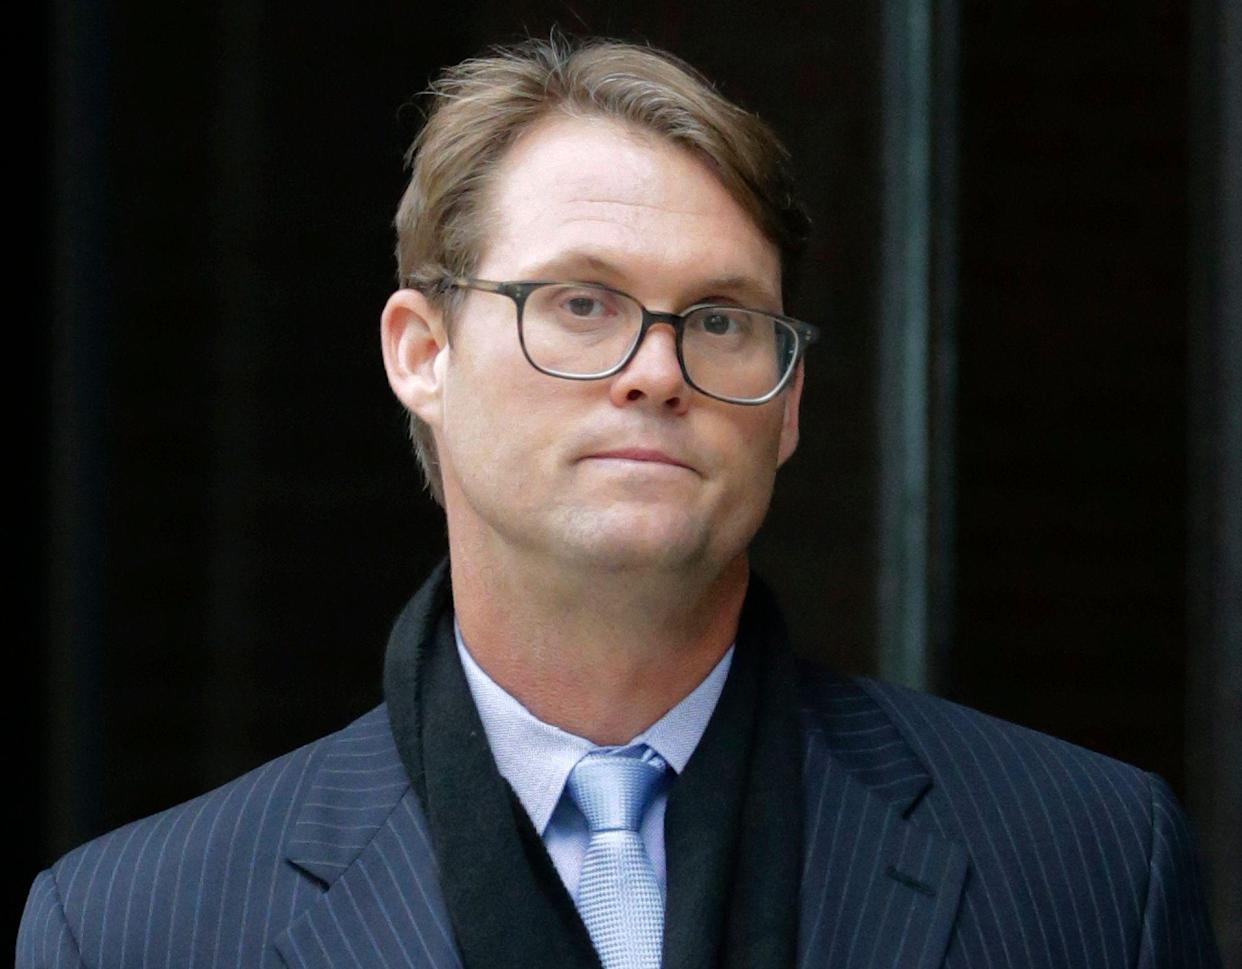 Mark Riddell departs federal court Friday, April 12, 2019, in Boston, after pleading guilty to charges in a nationwide college admissions bribery scandal. (AP Photo/Charles Krupa)